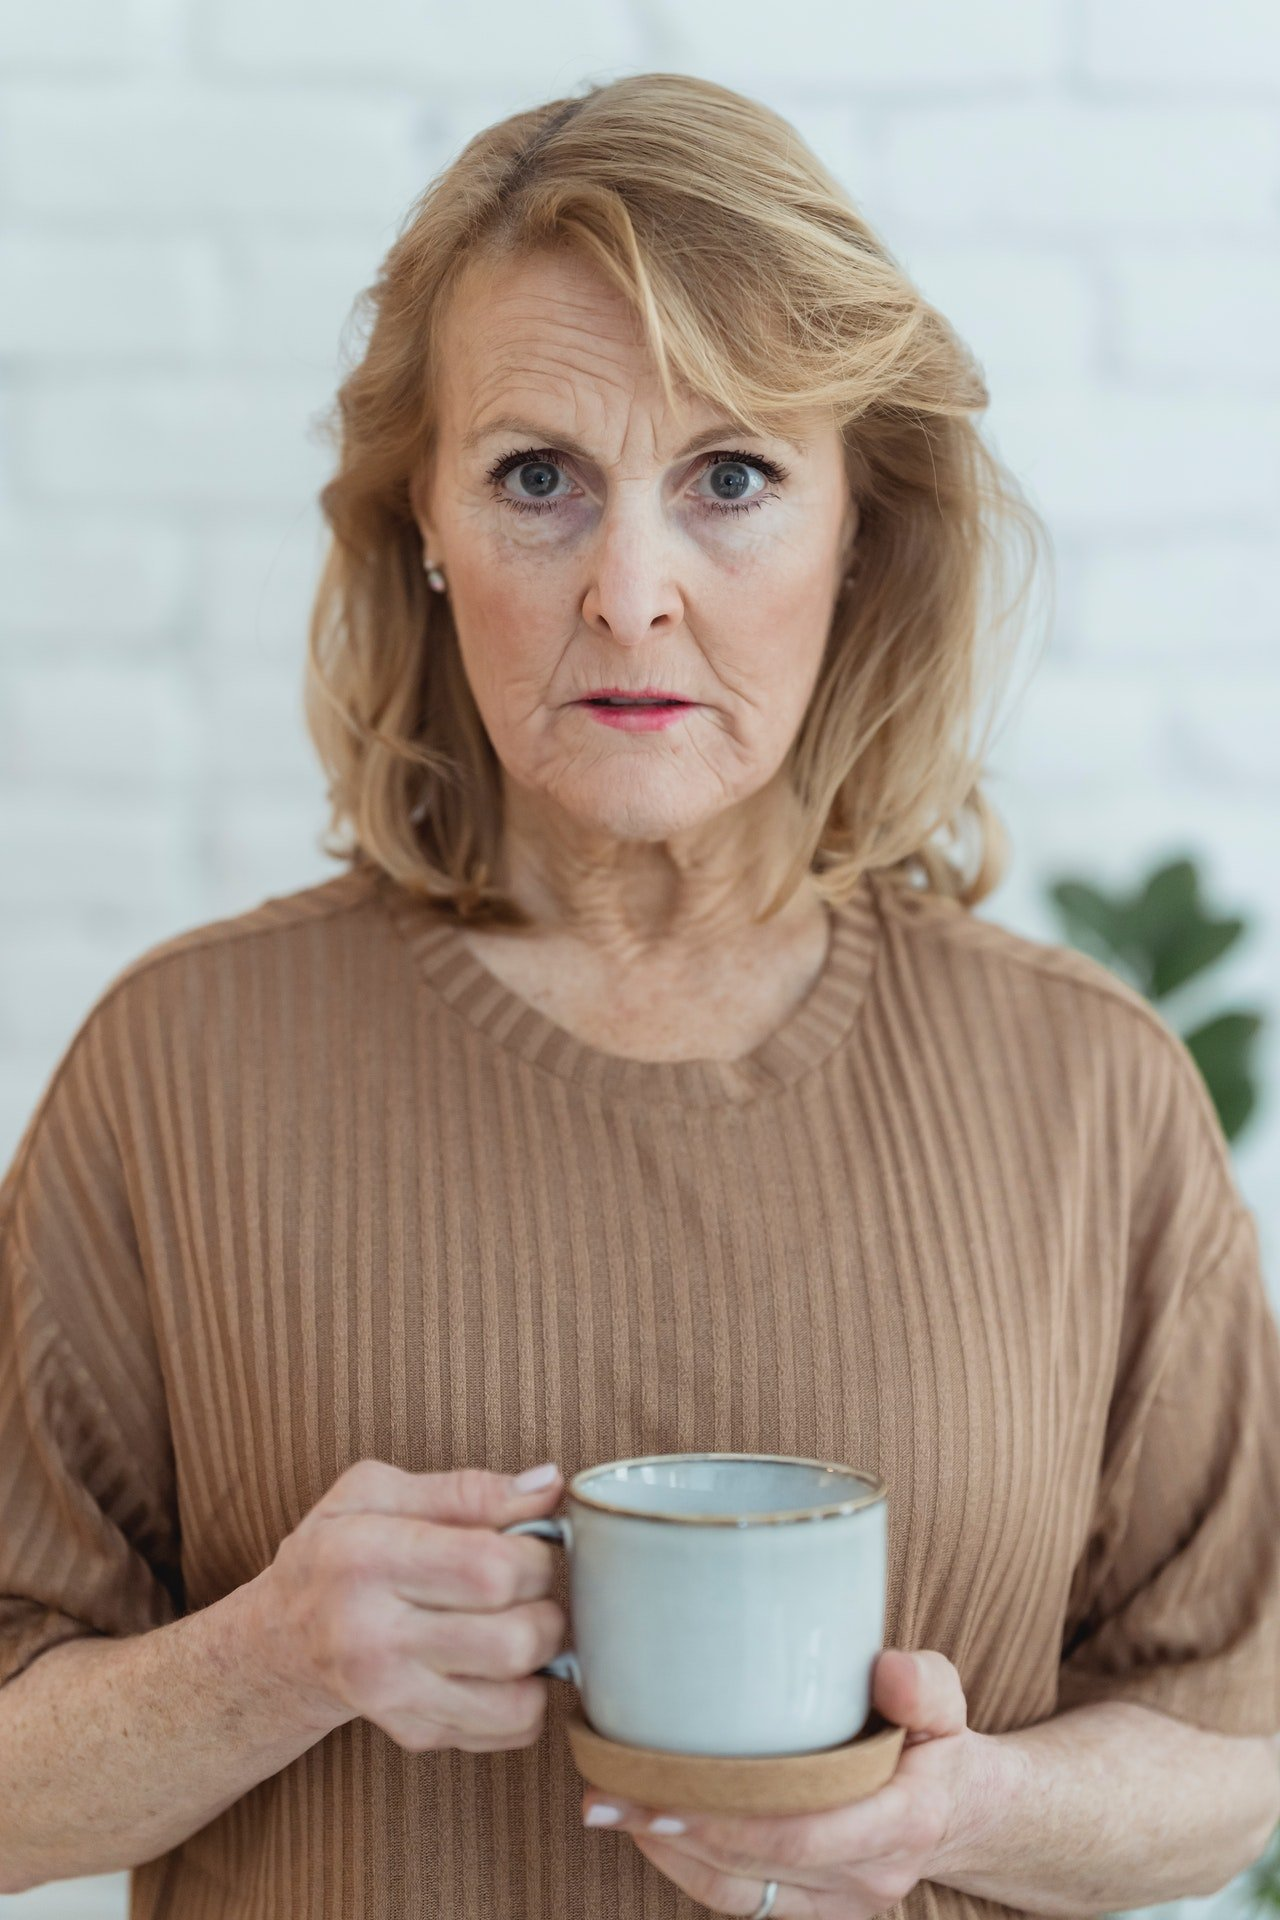 Shocked woman with a tea cup | Source: Pexels